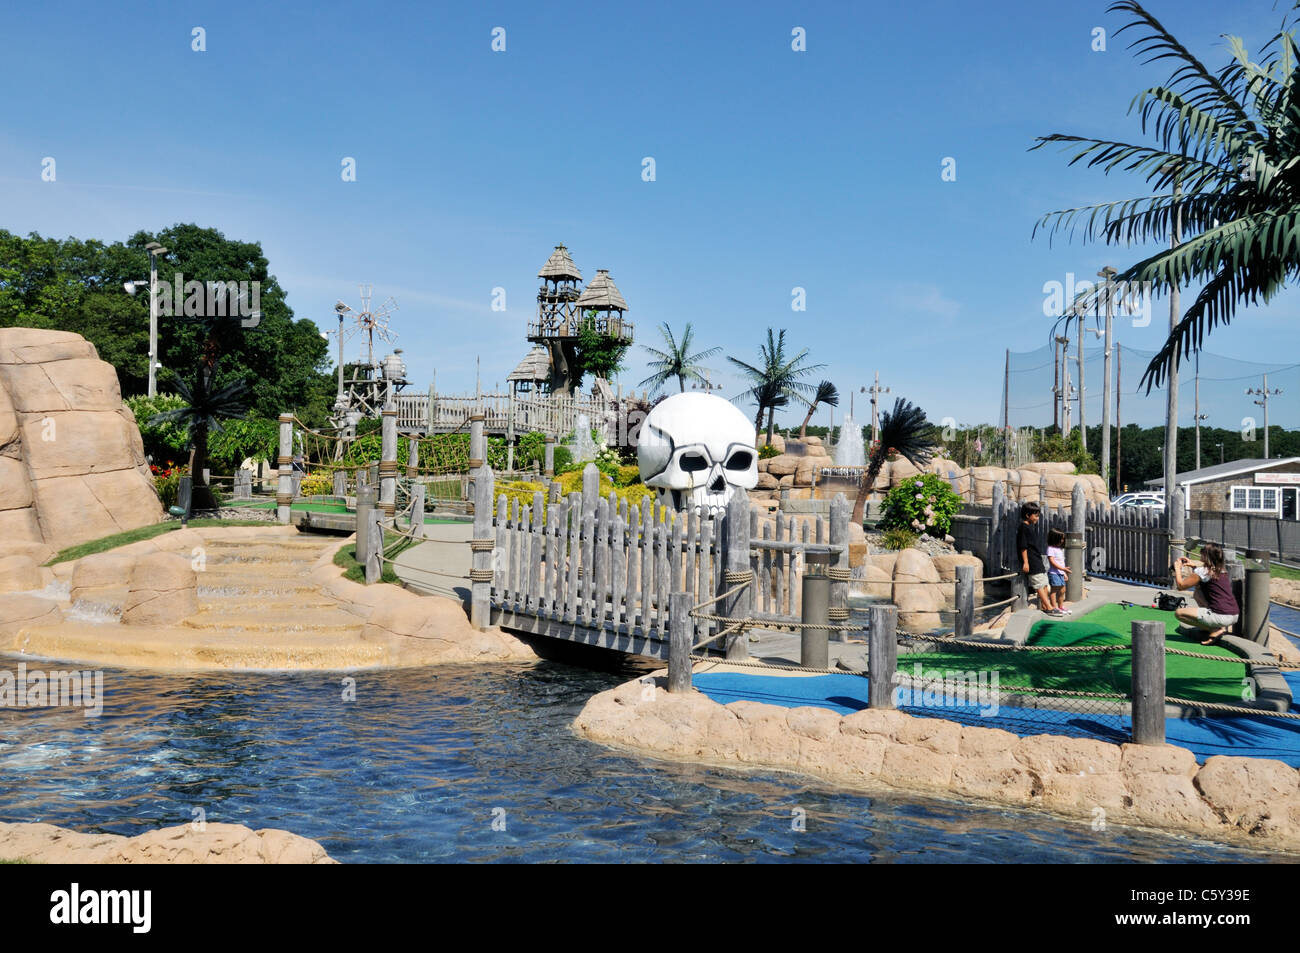 Miniature Golf on Route 28 in Yarmouth, Cape Cod, Massachusetts USA in Summer on a sunny blue sky day Stock Photo